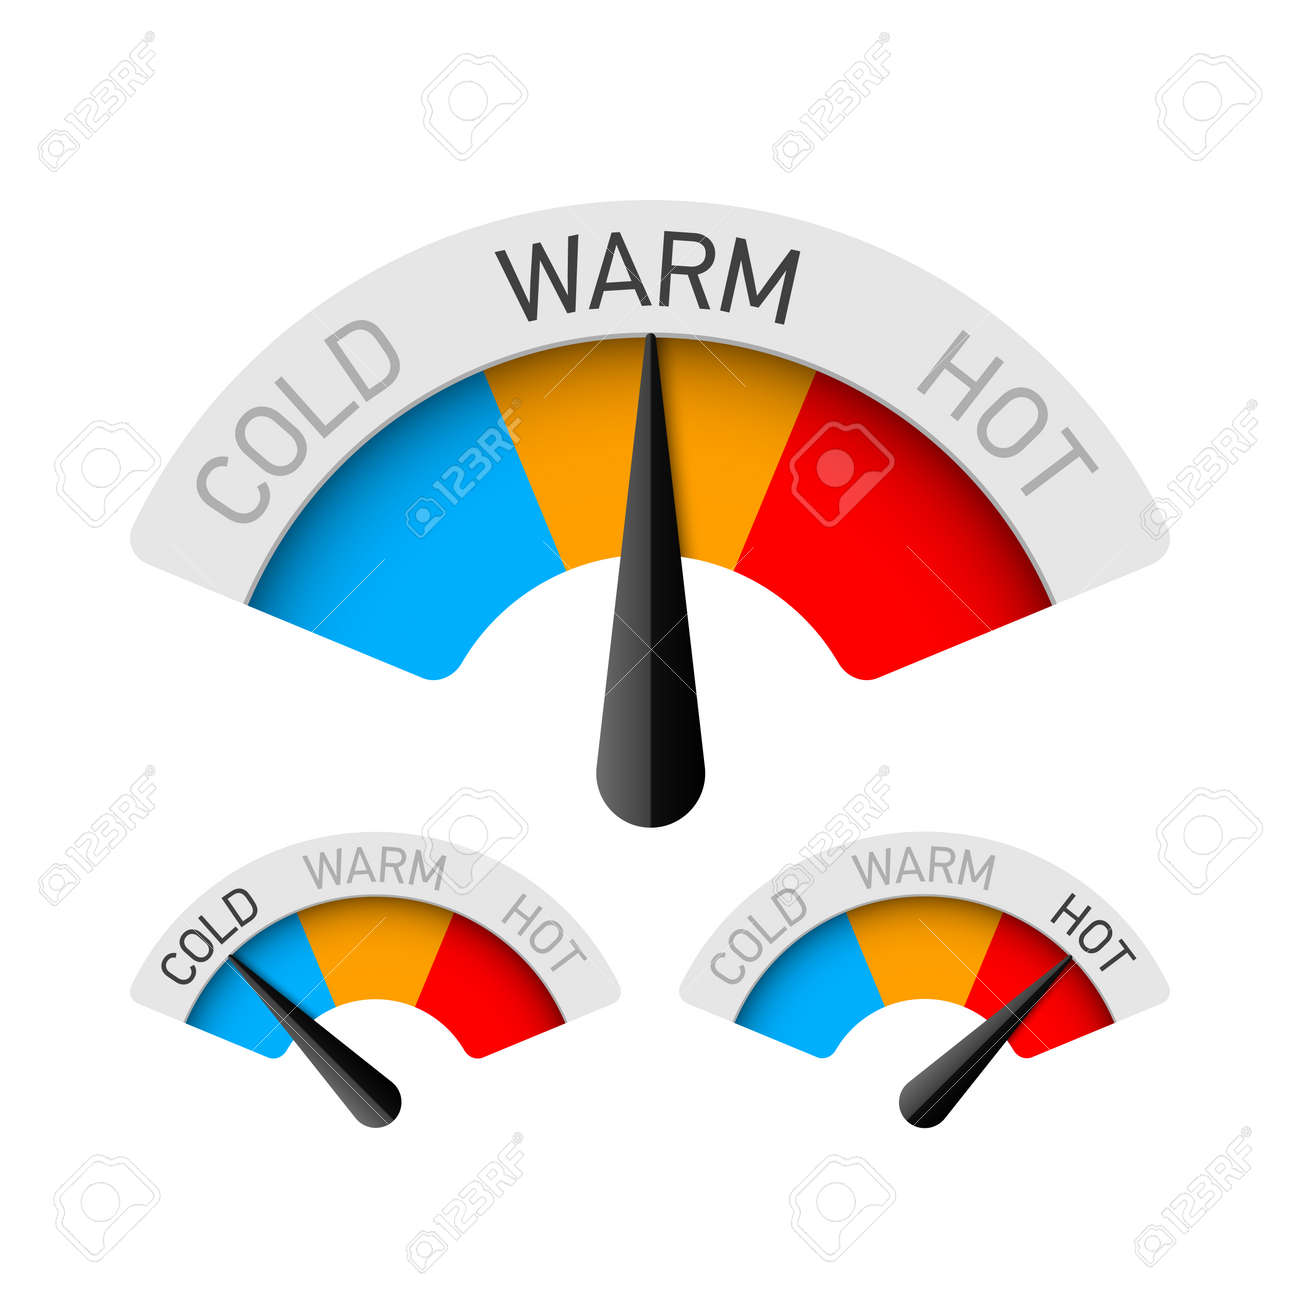 Cold, warm and hot temperature gauge - 70650134